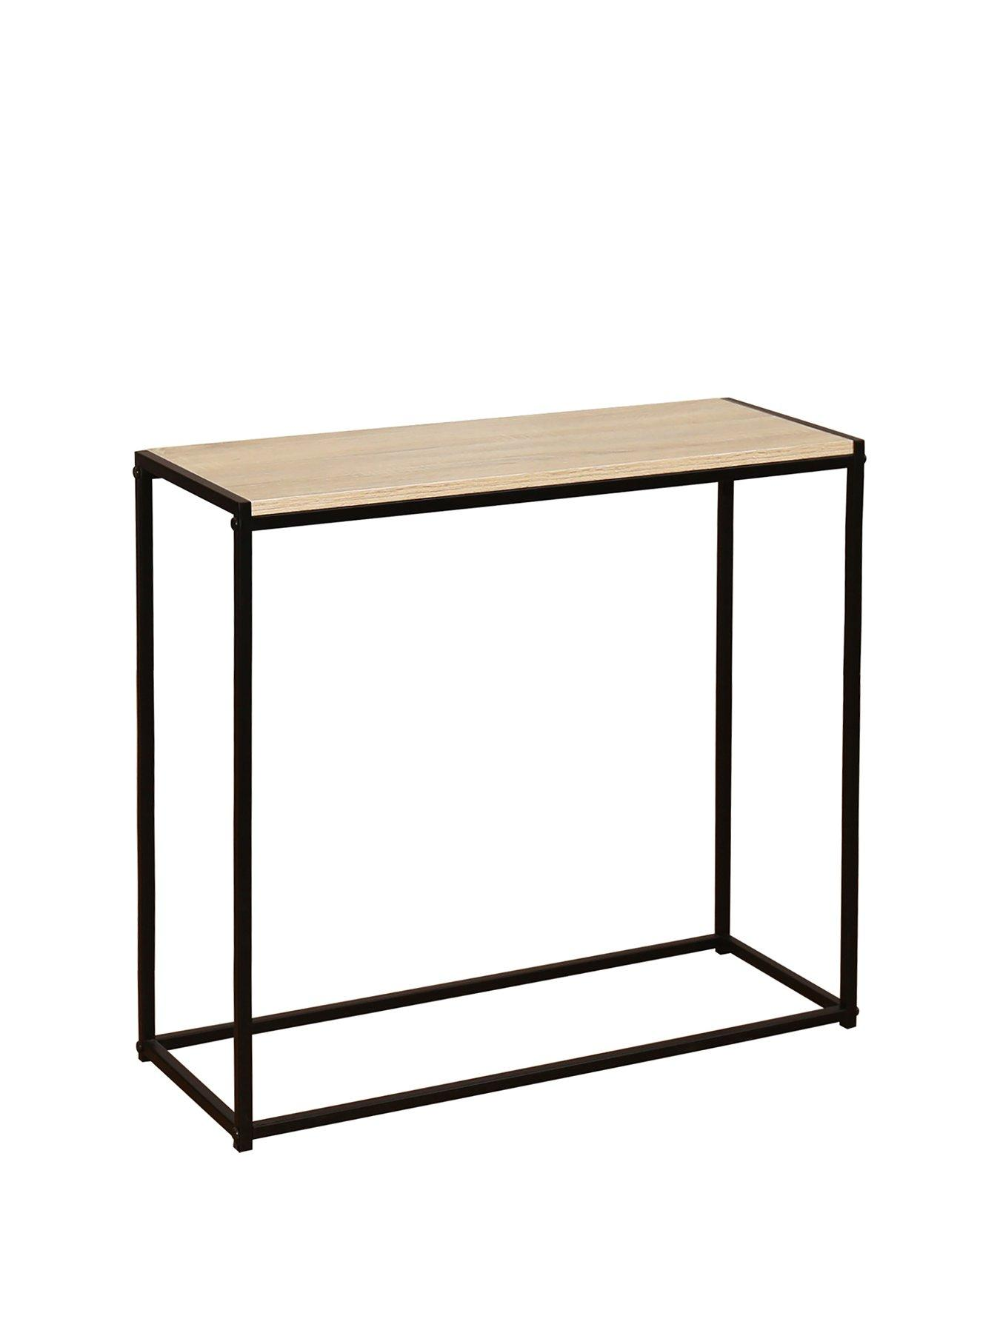 Telford Industrial Console Table Industrial Console Tables Console Table Metal Console Table